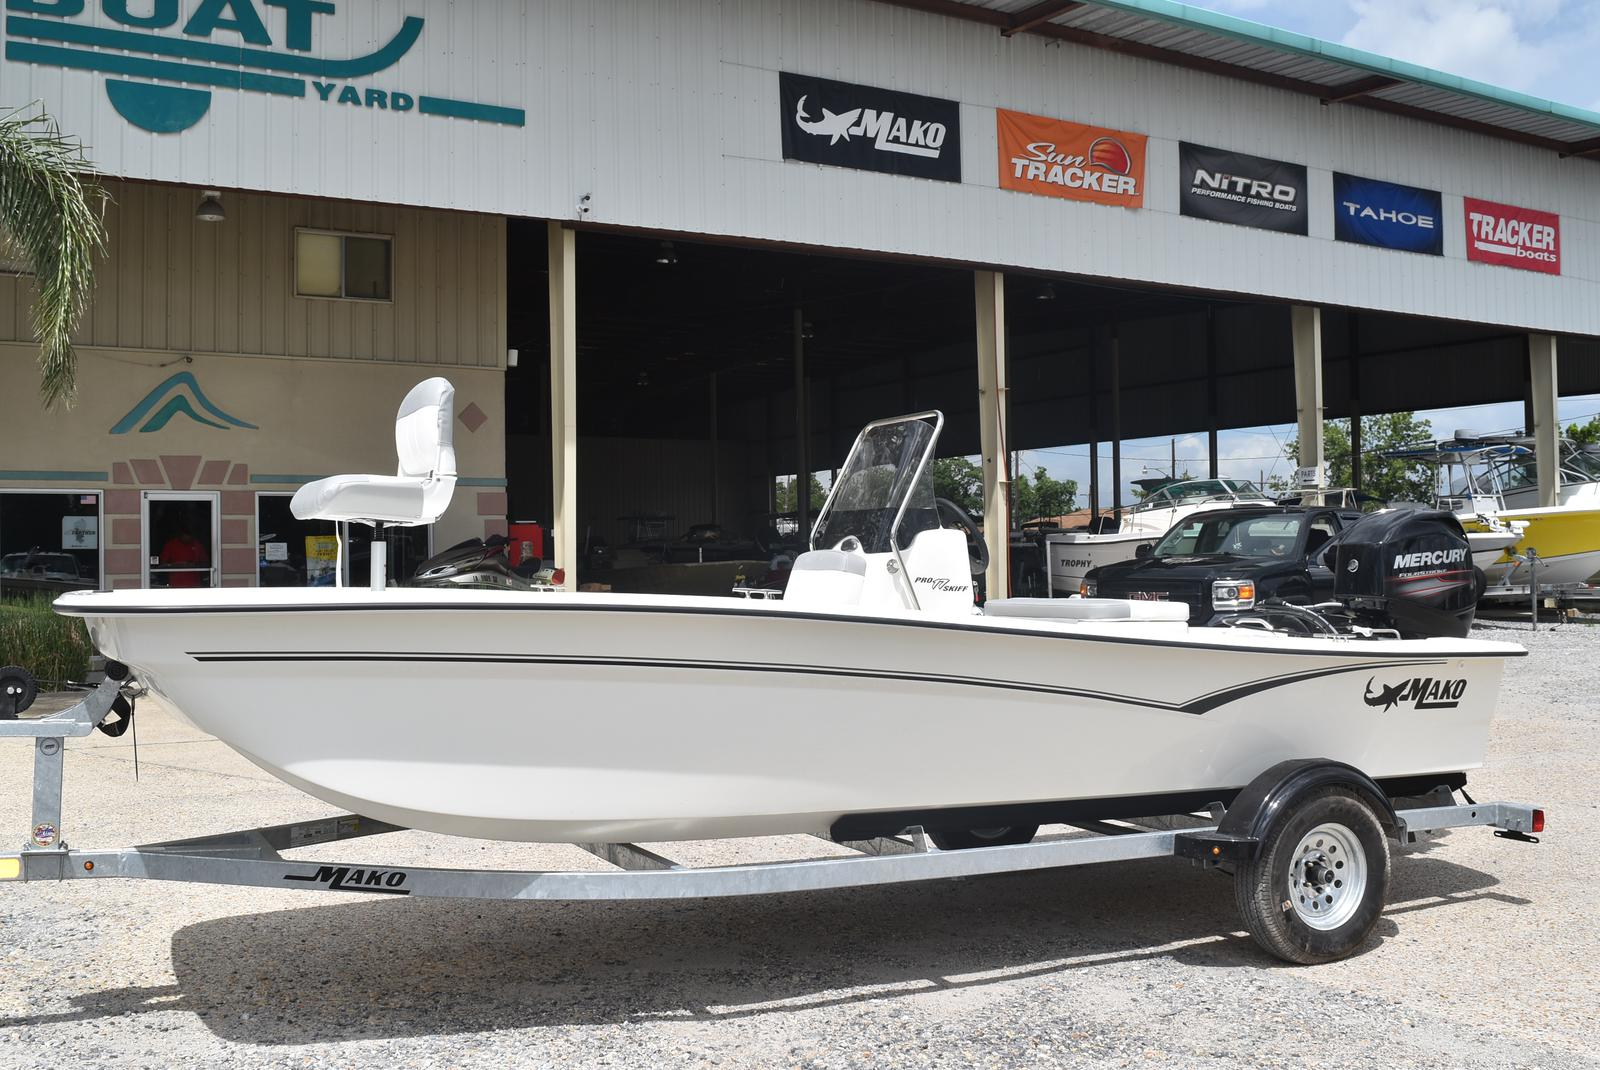 2020 Mako boat for sale, model of the boat is Pro Skiff 17, 75 ELPT & Image # 131 of 702